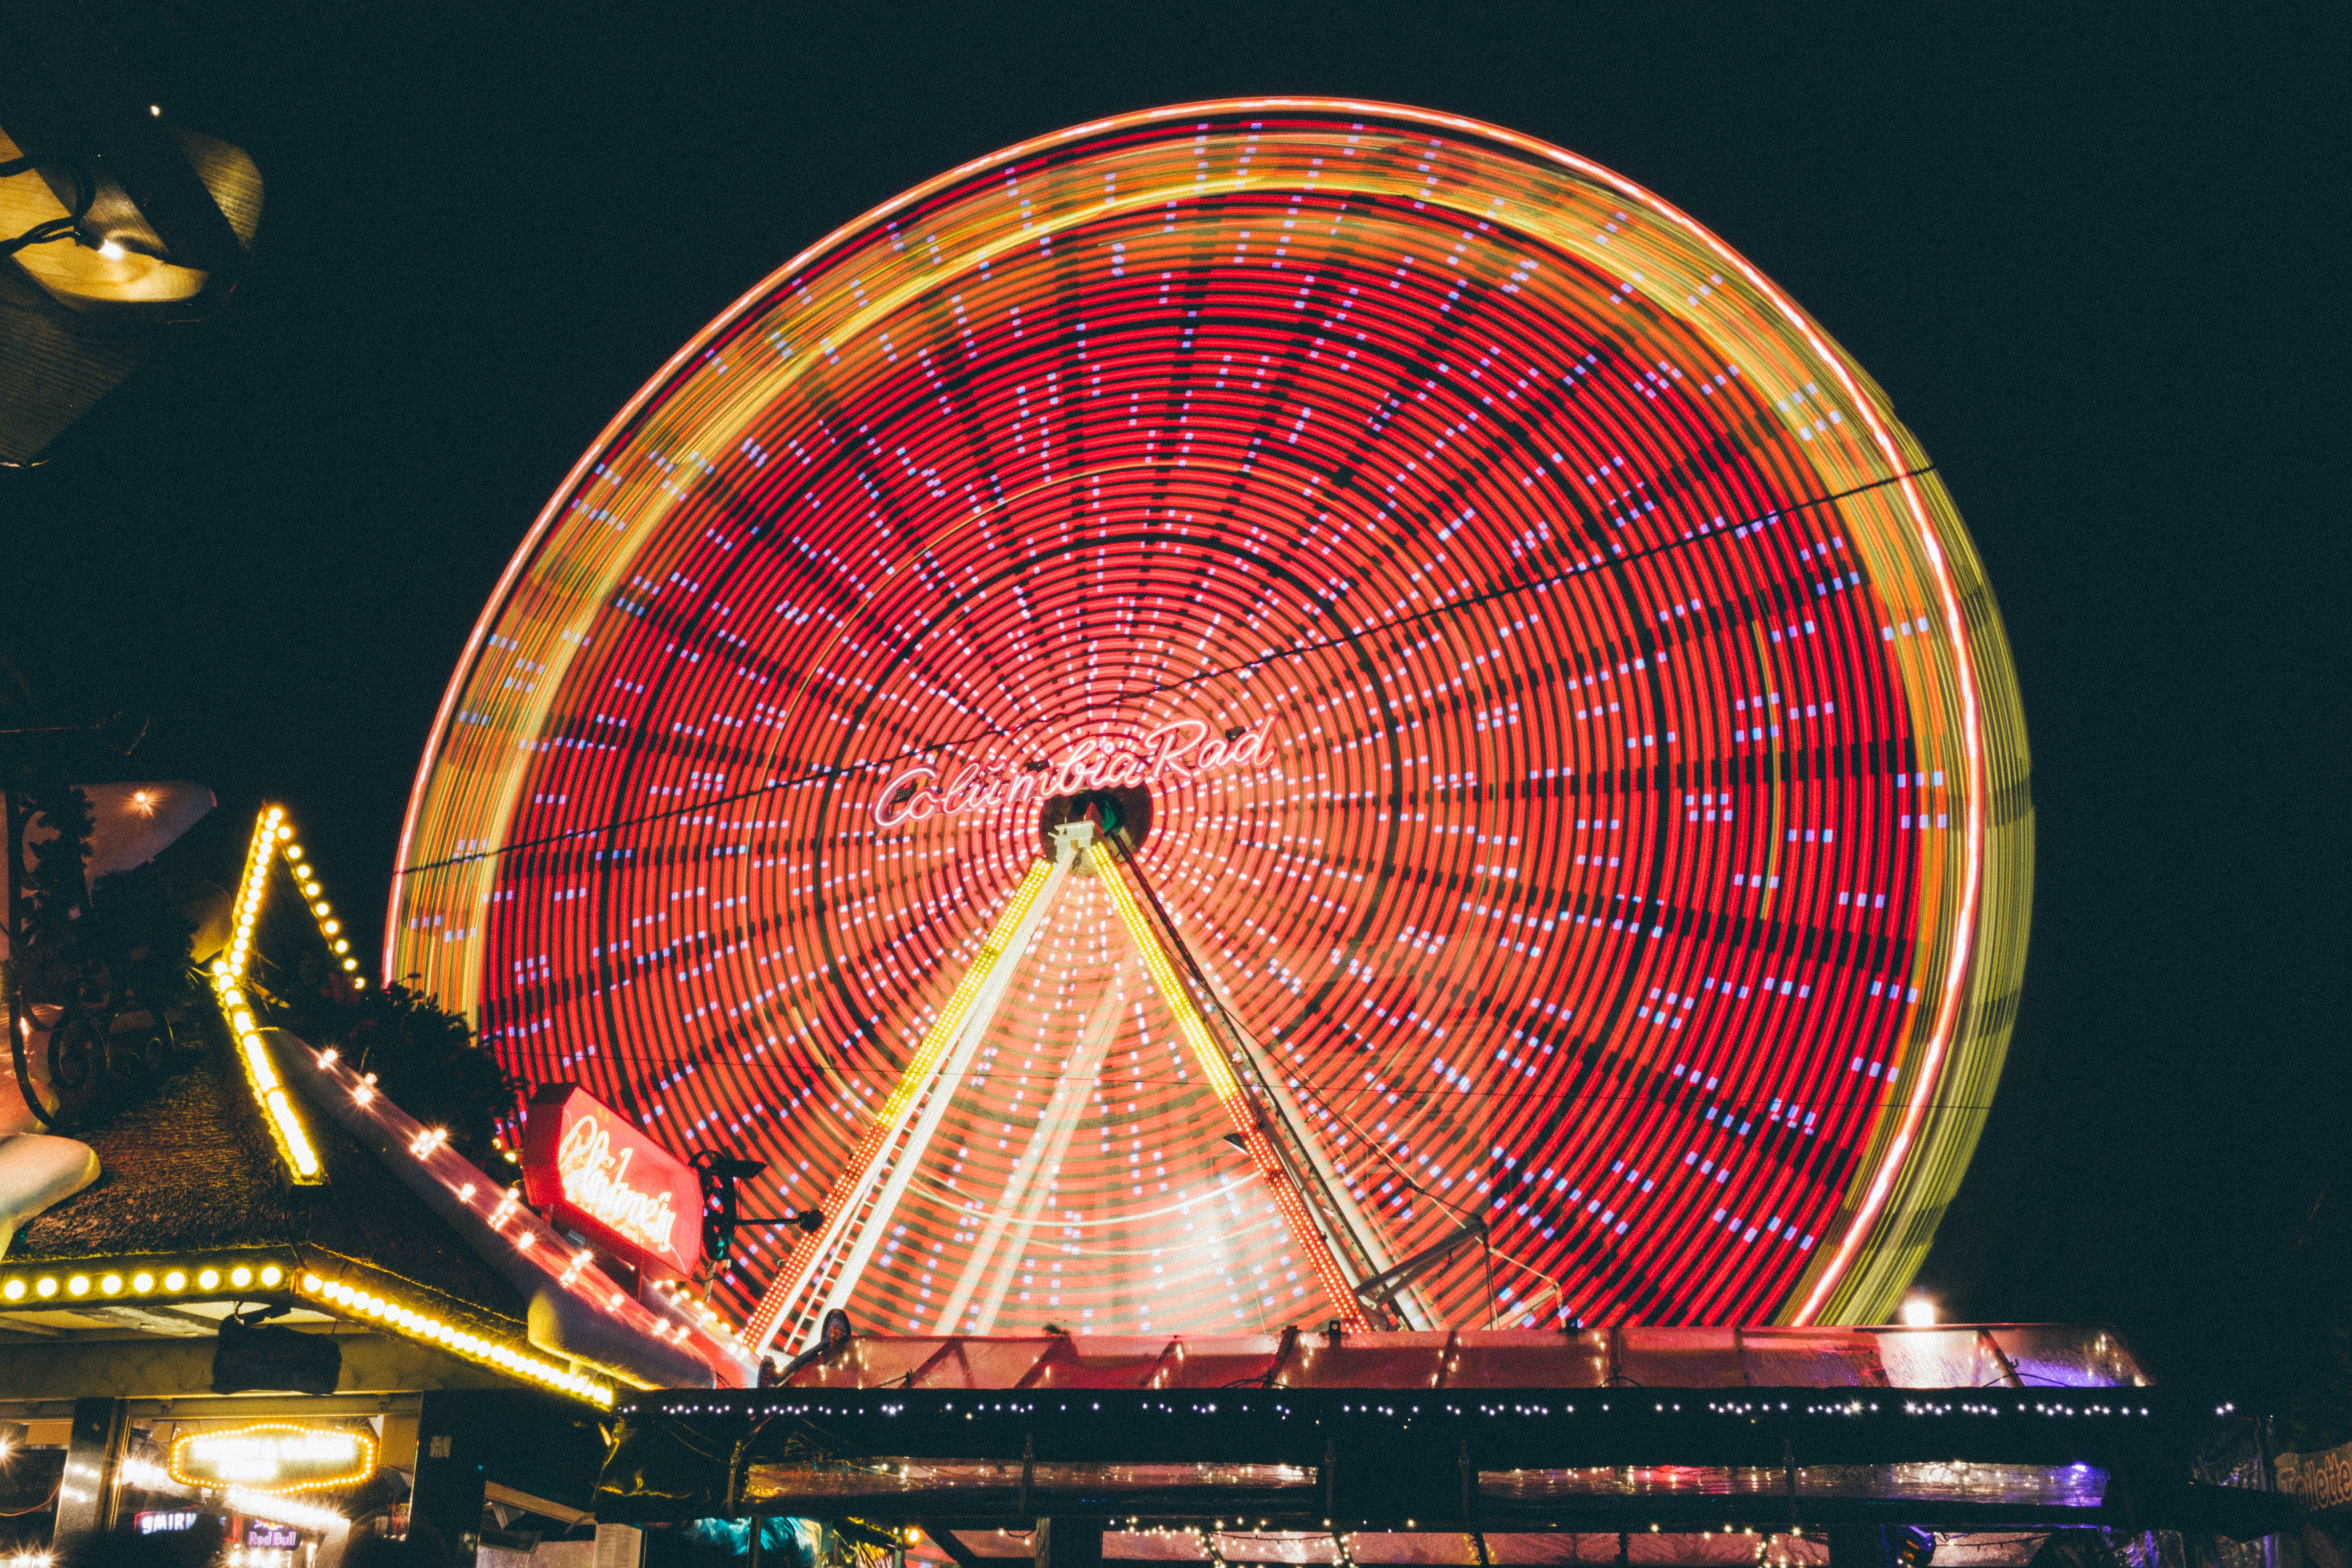 Time Lapse Photo of Red and Yellow Lighted Ferris Wheel